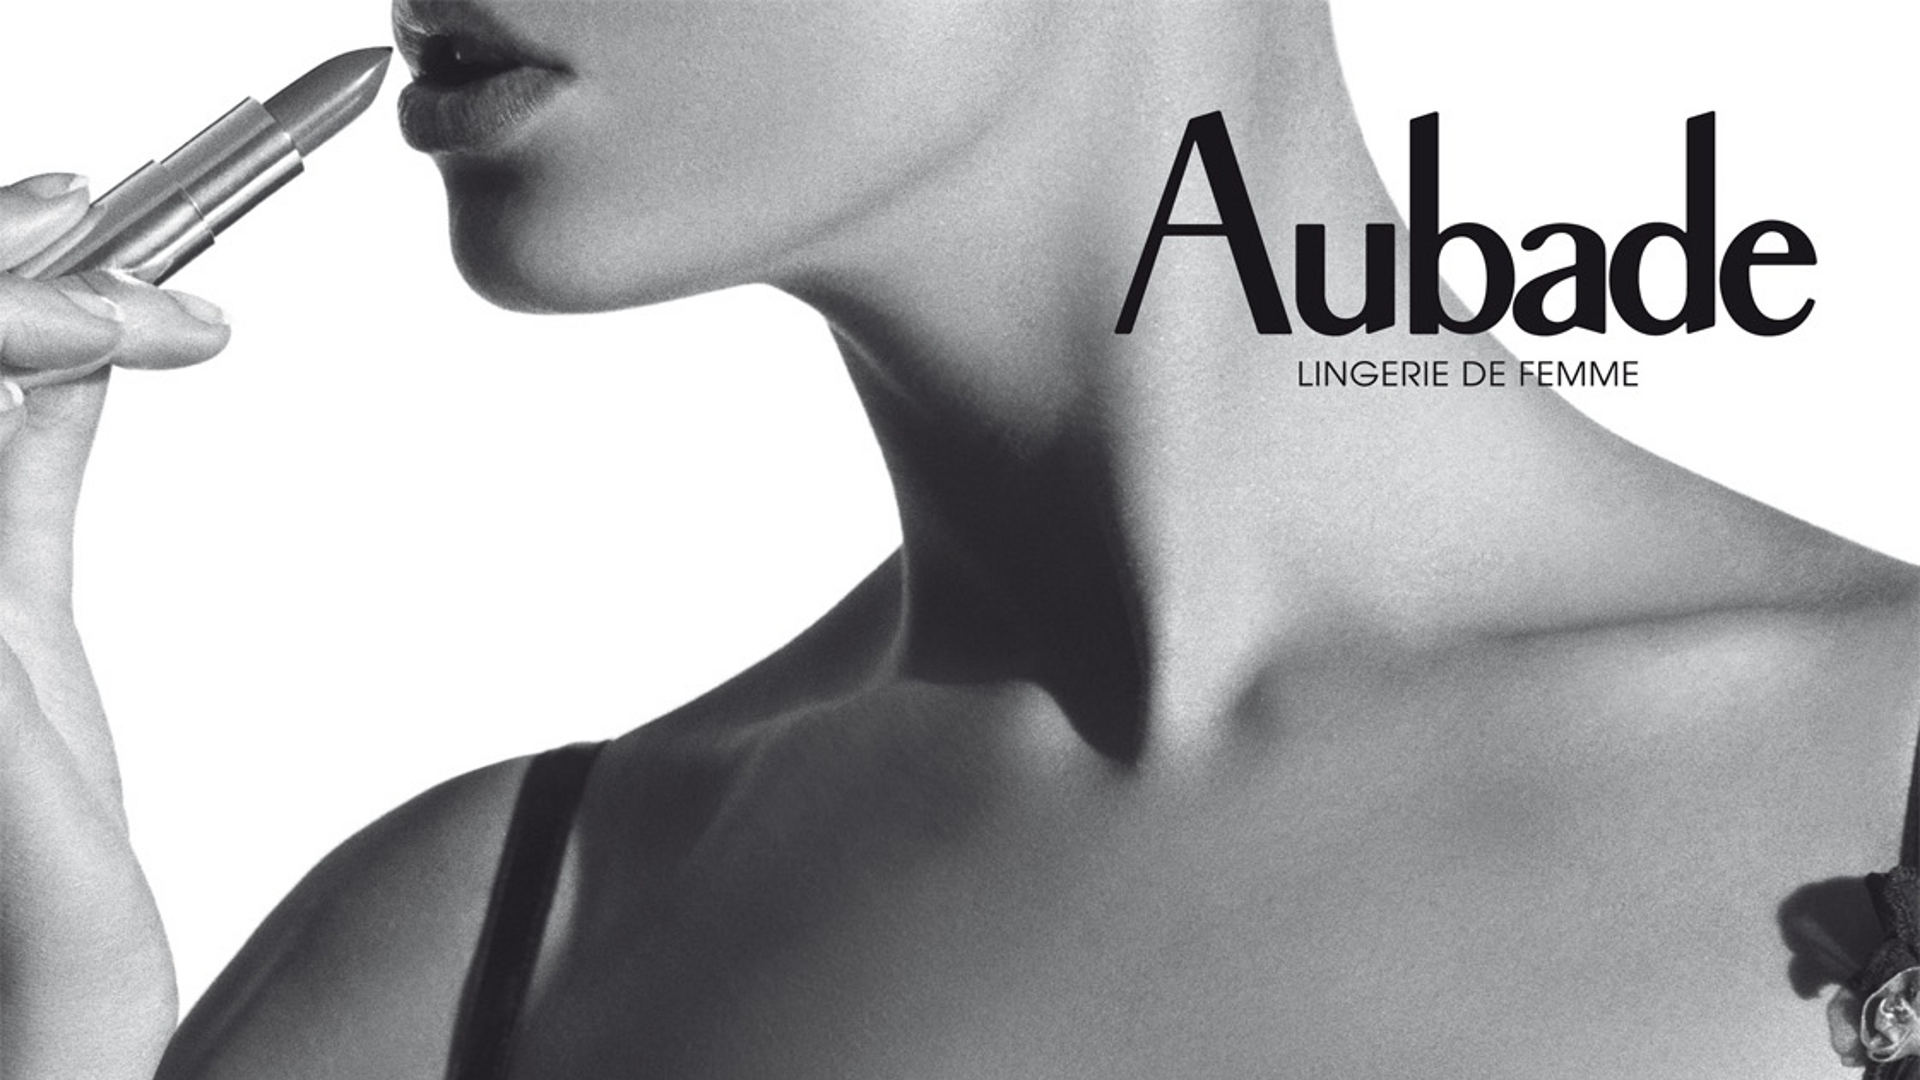 aubade images aubade 2009 hd wallpaper and background